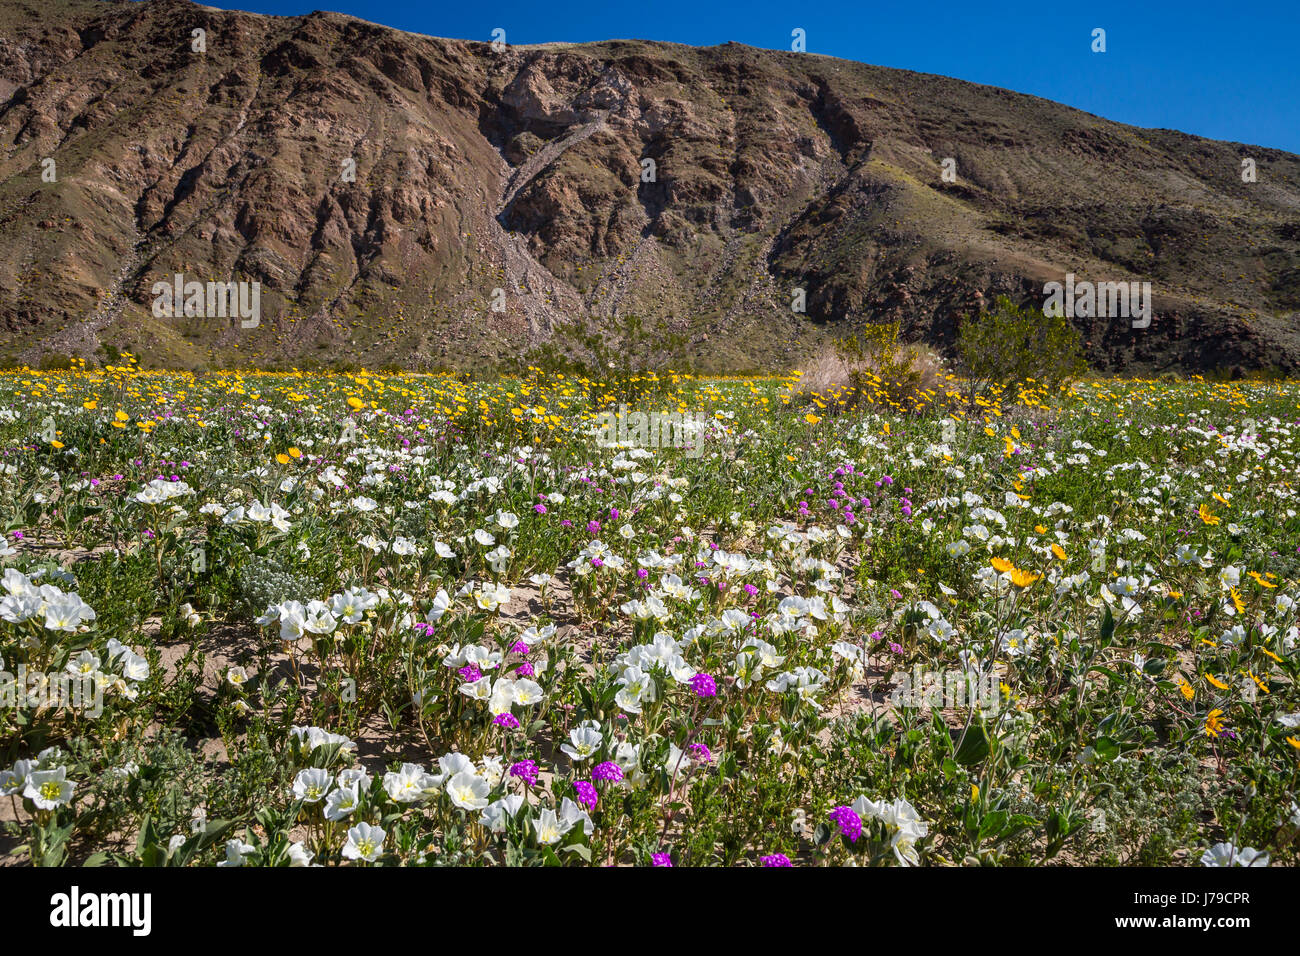 Borrego springs flowers stunning march jim reports i was out in affordable spring desert wildflowers near borrego springs california usa with borrego springs flowers mightylinksfo Images